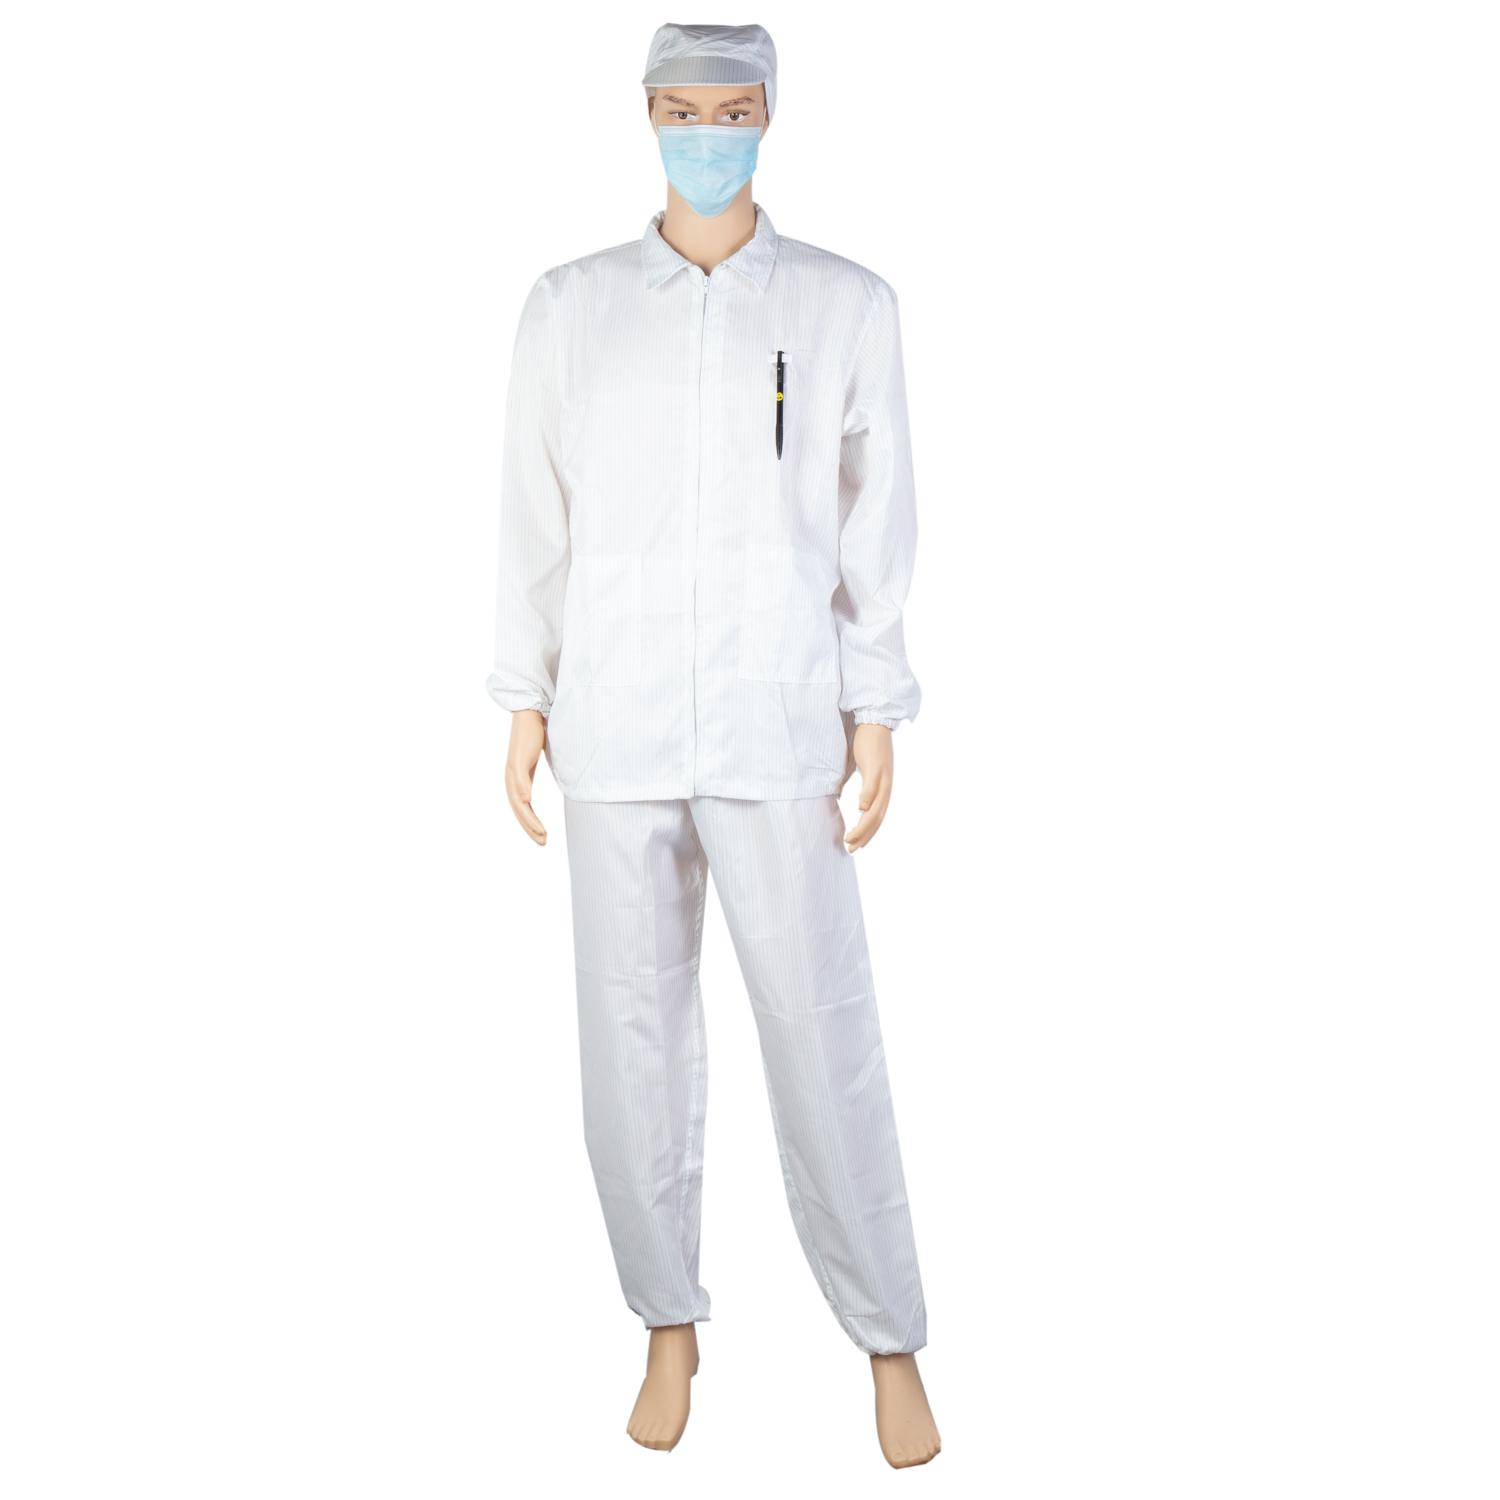 High Quality Zipper Type Anti-static Garment Suit Working Uniform Safety Clothing Protective Jacket Safety Suits - KingCare | KingCare.net